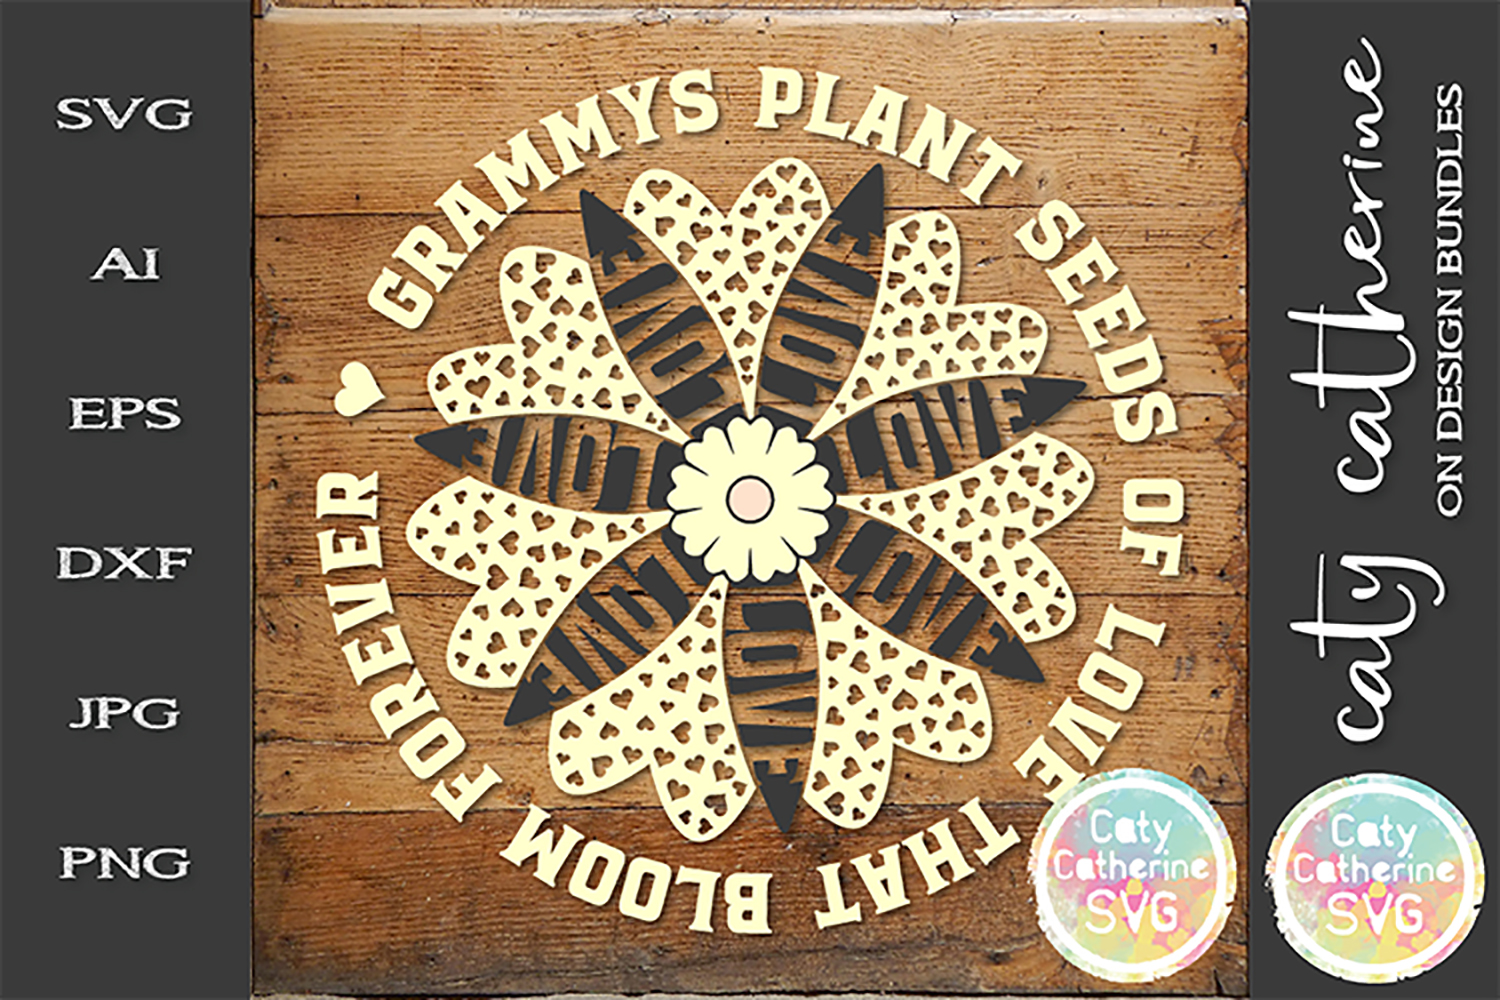 Grammy's Plant Seeds Of Love That Bloom Forever SVG Cut File example image 1